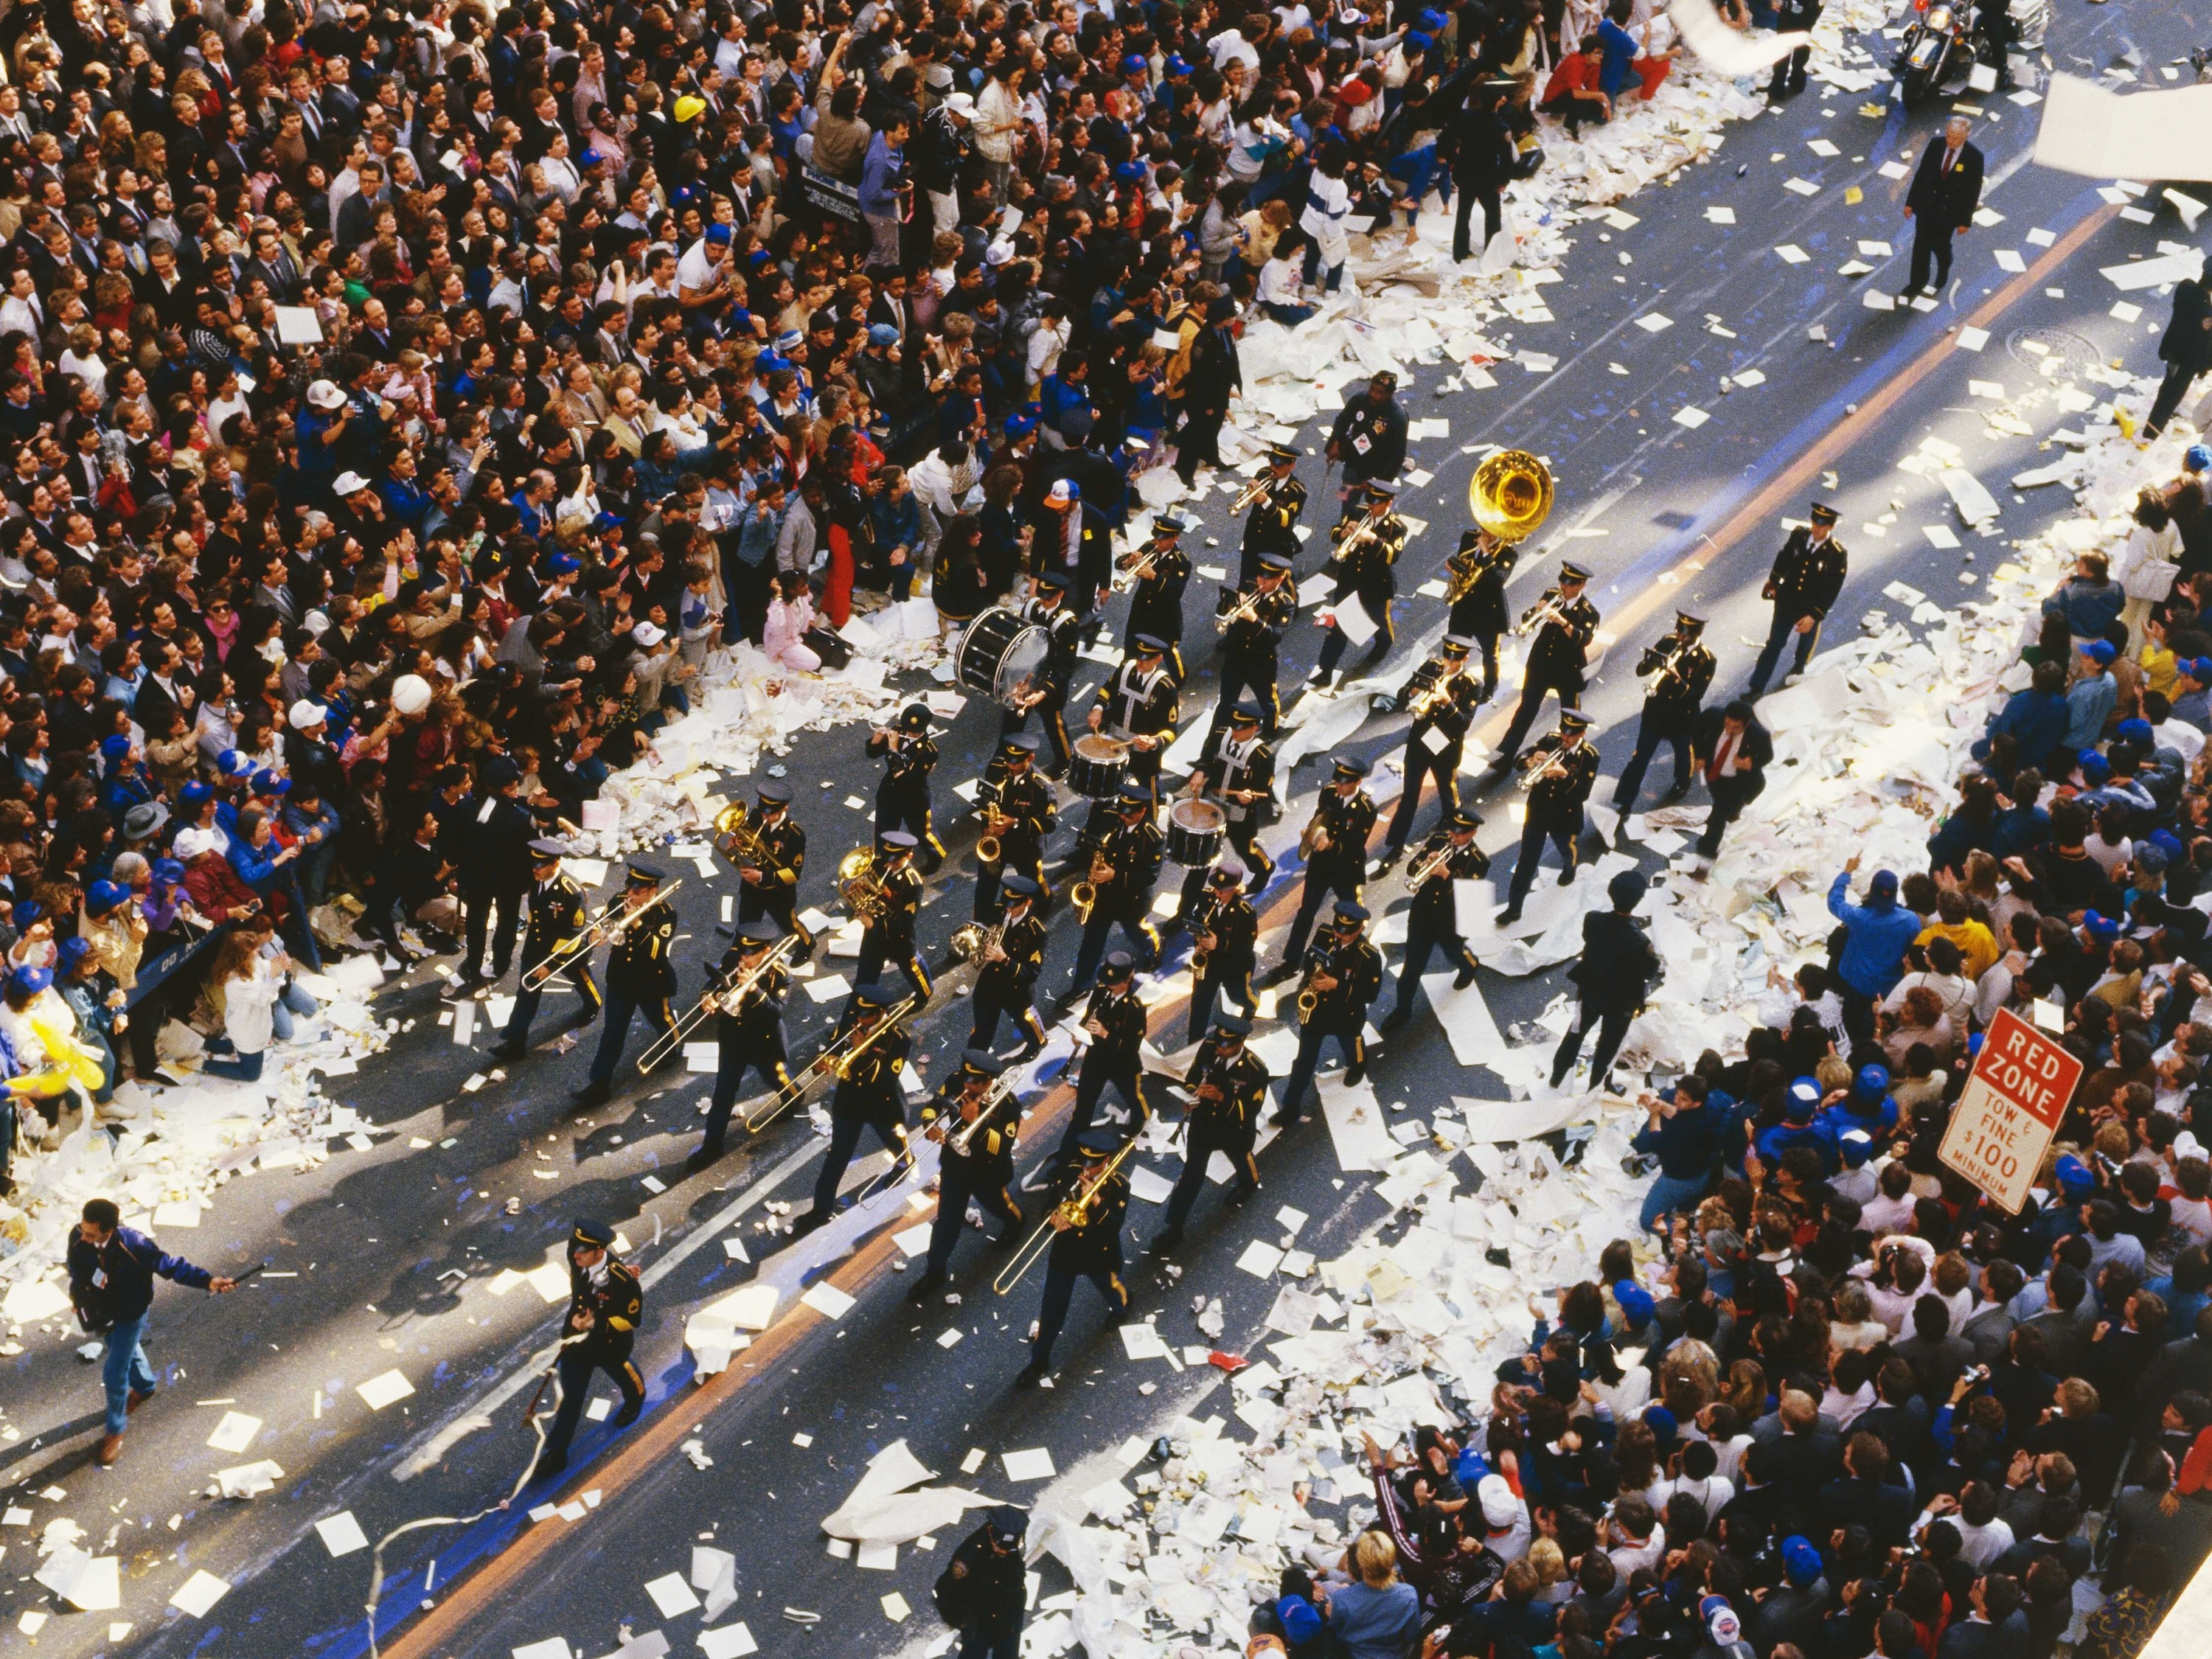 NYC will hold a ticker tape parade to honor healthcare workers and first responders